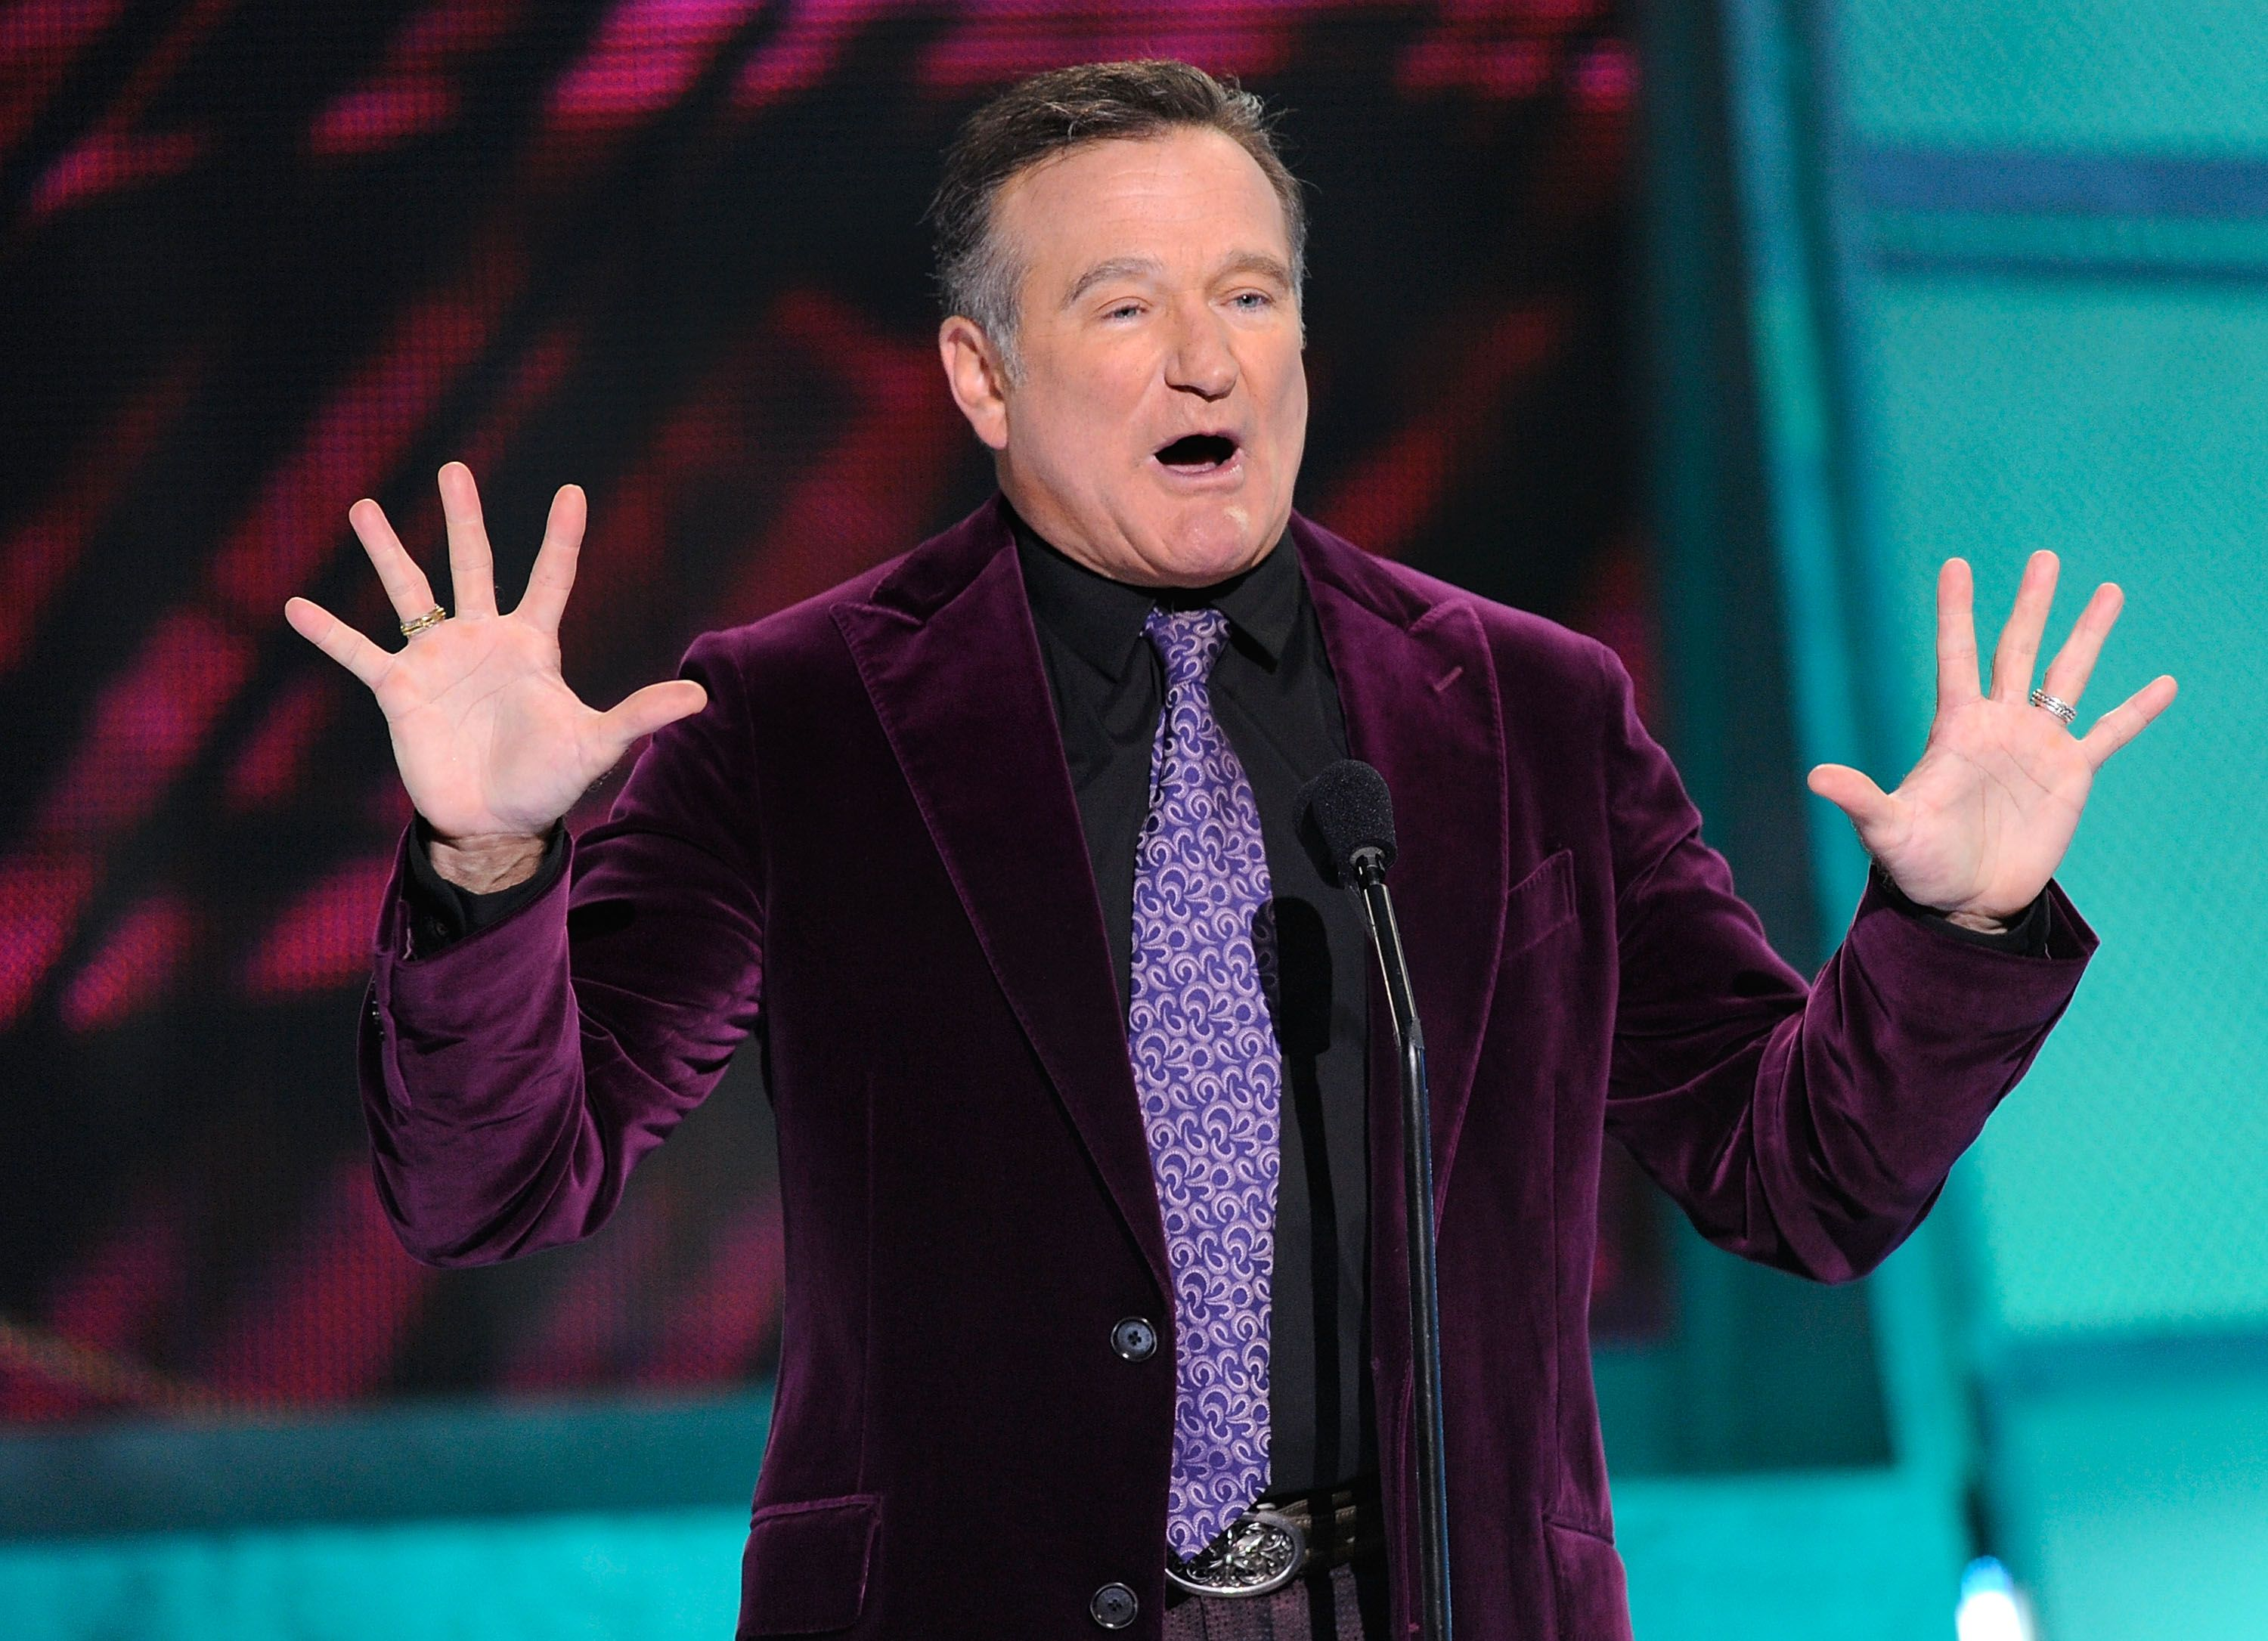 Late Robin Williams spoke at the 35th Annual People's Choice Awards held at the Shrine Auditorium on January 7, 2009 | Photo: Getty Images